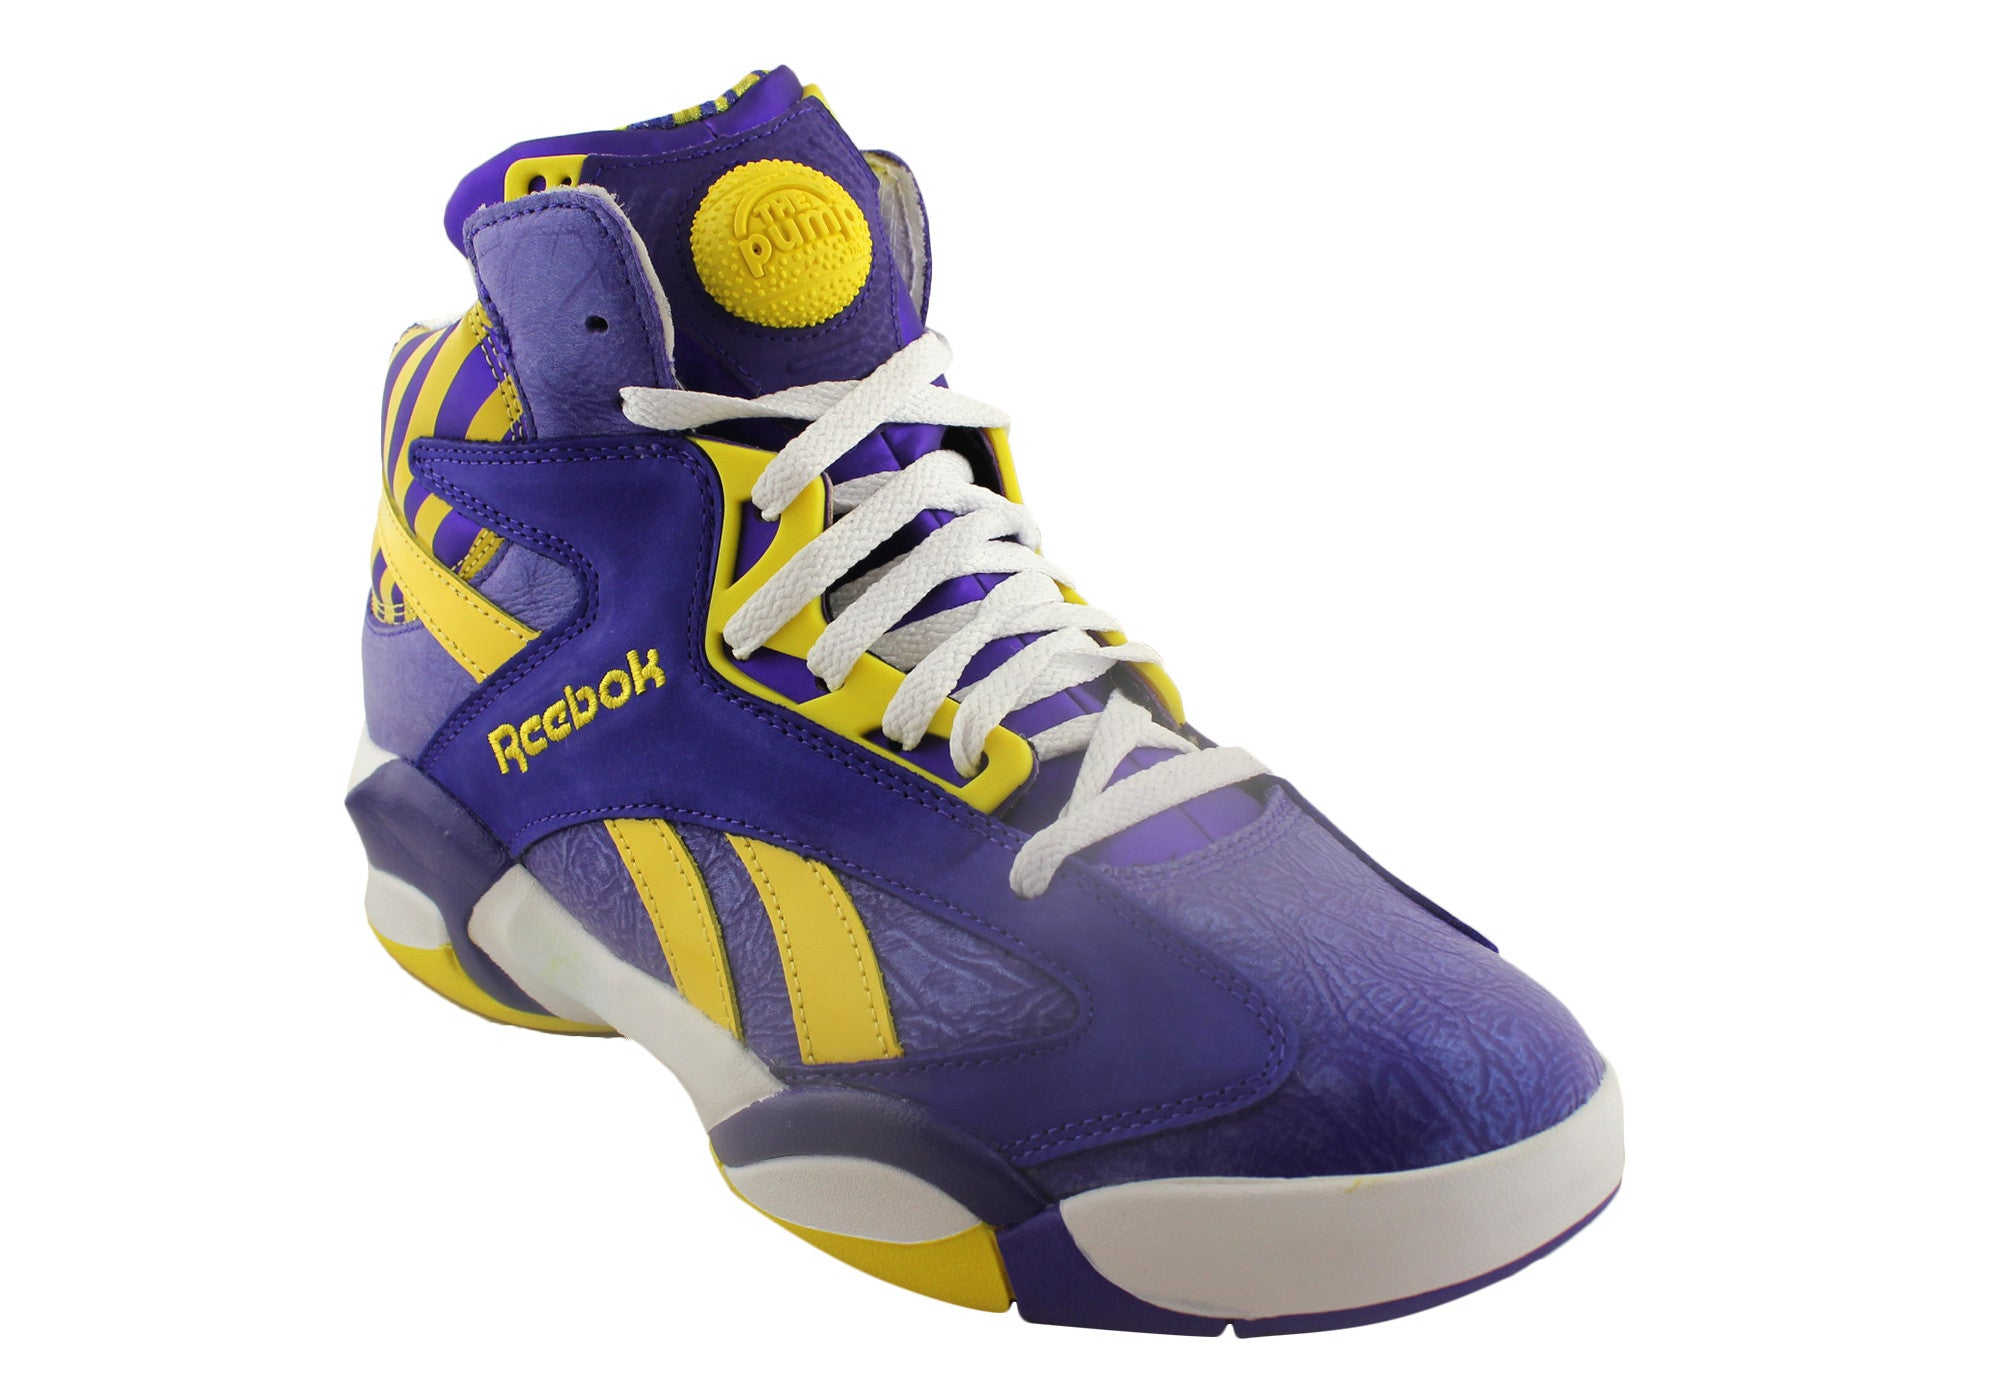 bright in luster clear and distinctive structural disablities Reebok Mens Pump Shaq Attack Basketball Boots